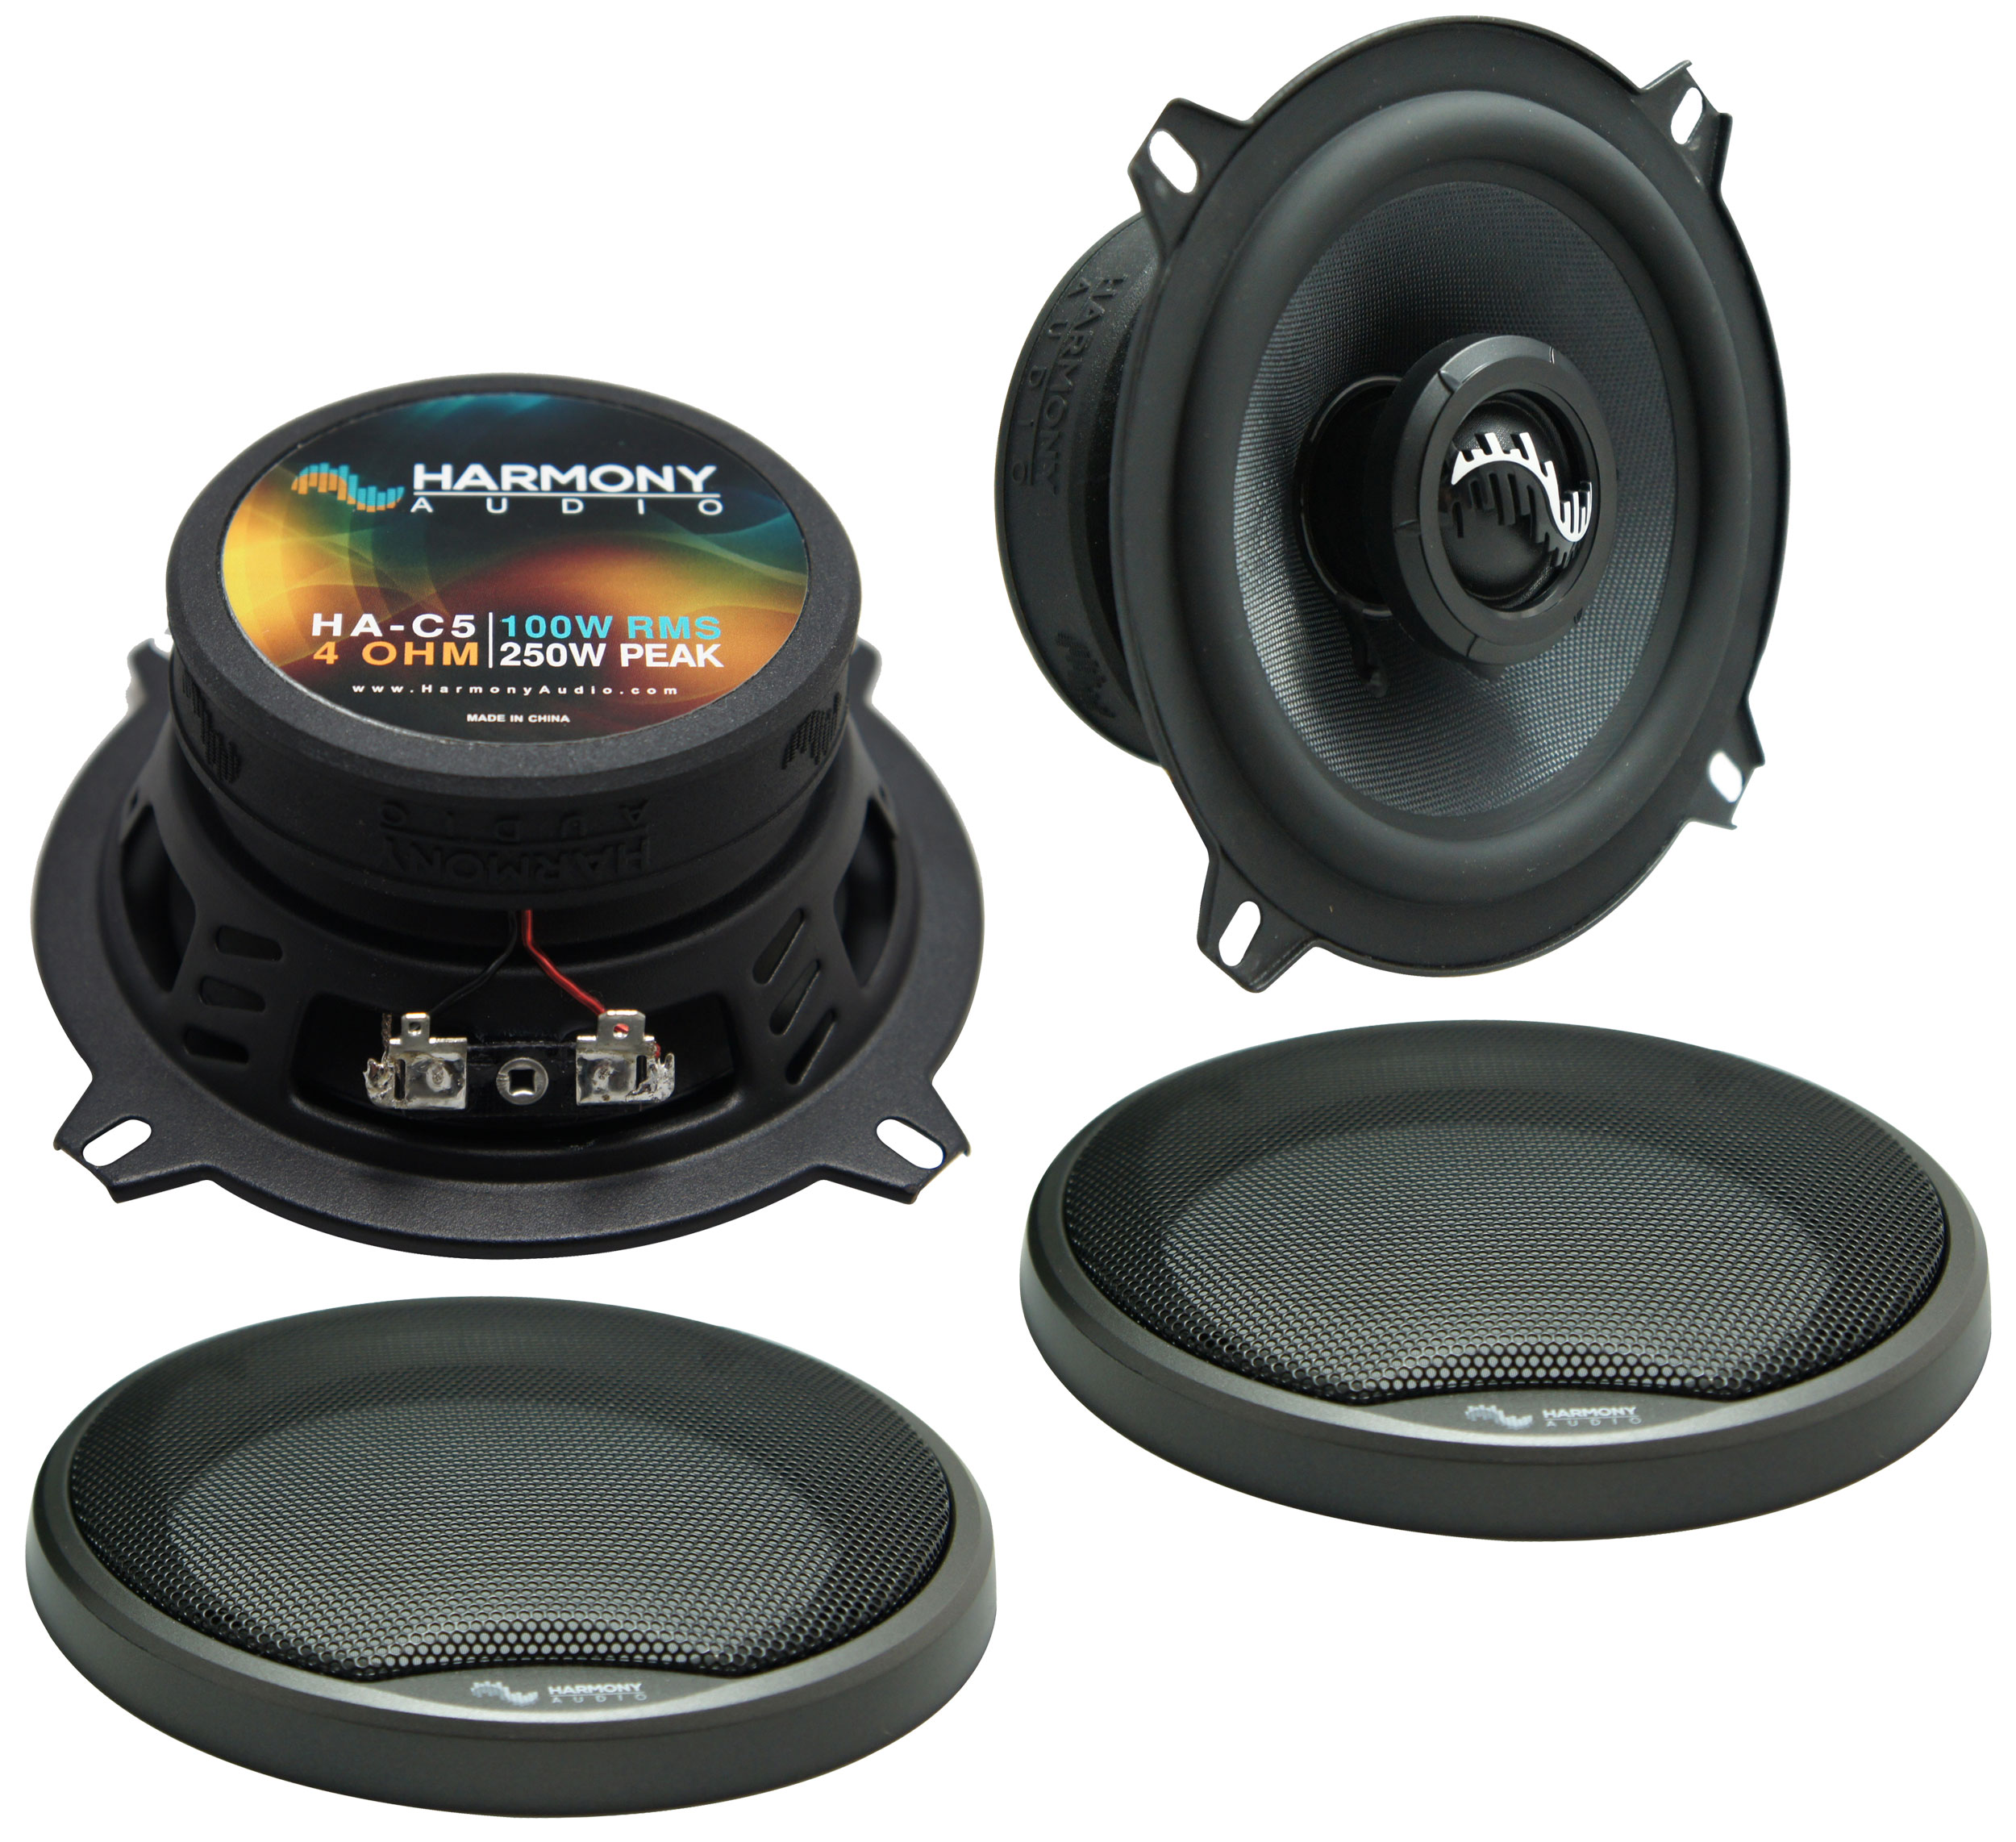 Fits Chevy Avalanche 2007-2013 Rear Deck Replacement Harmony HA-C5 Premium Speakers